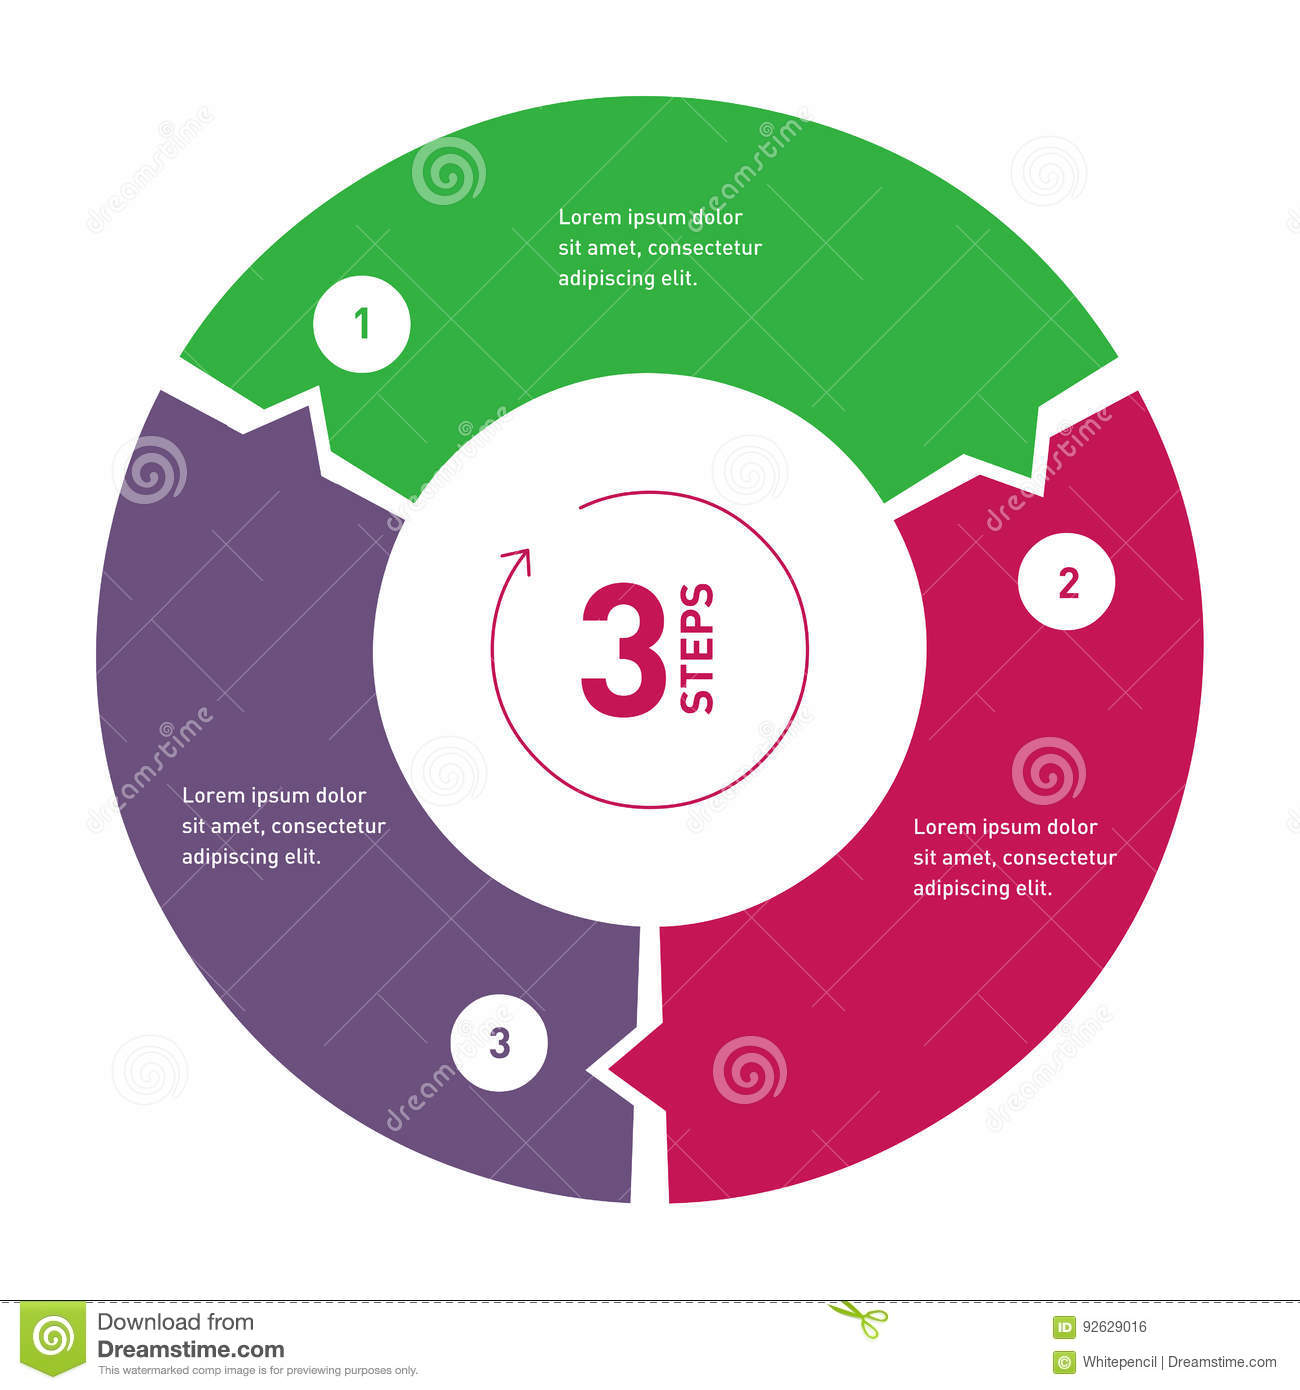 hight resolution of 3 step process circle infographic template for diagram annual report presentation chart web design